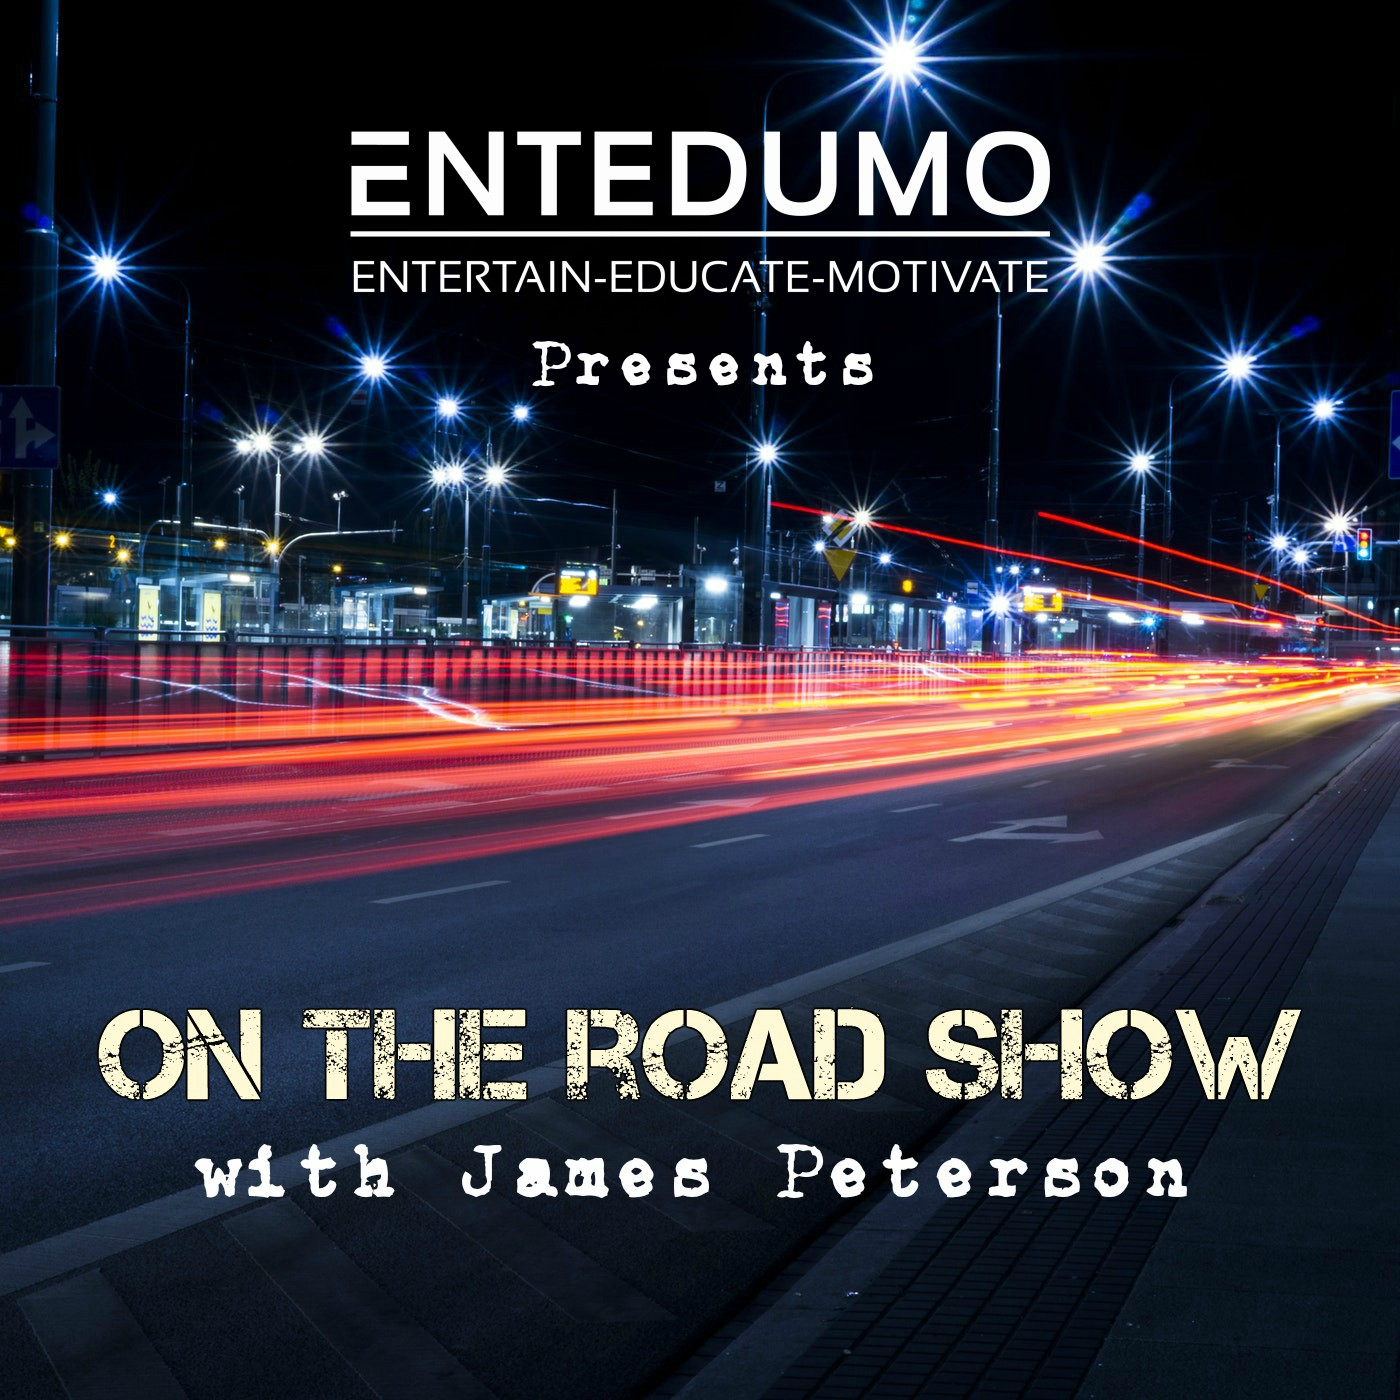 Entedumo: On The Road Show